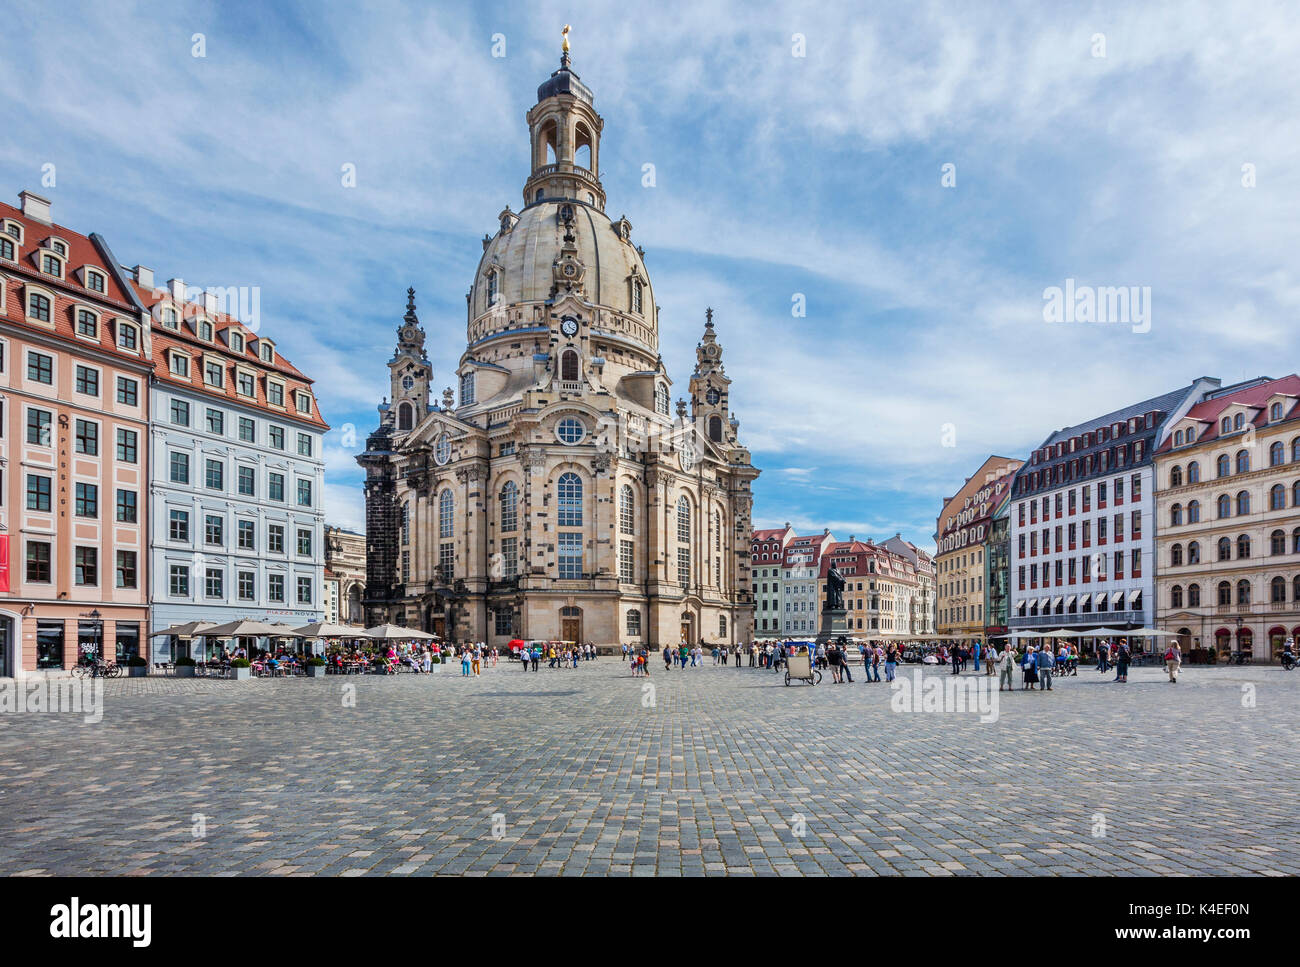 Germany, Saxony, Dresden, Neumarkt Square, view of the reconstructed Dresden Frauenkirche - Stock Image